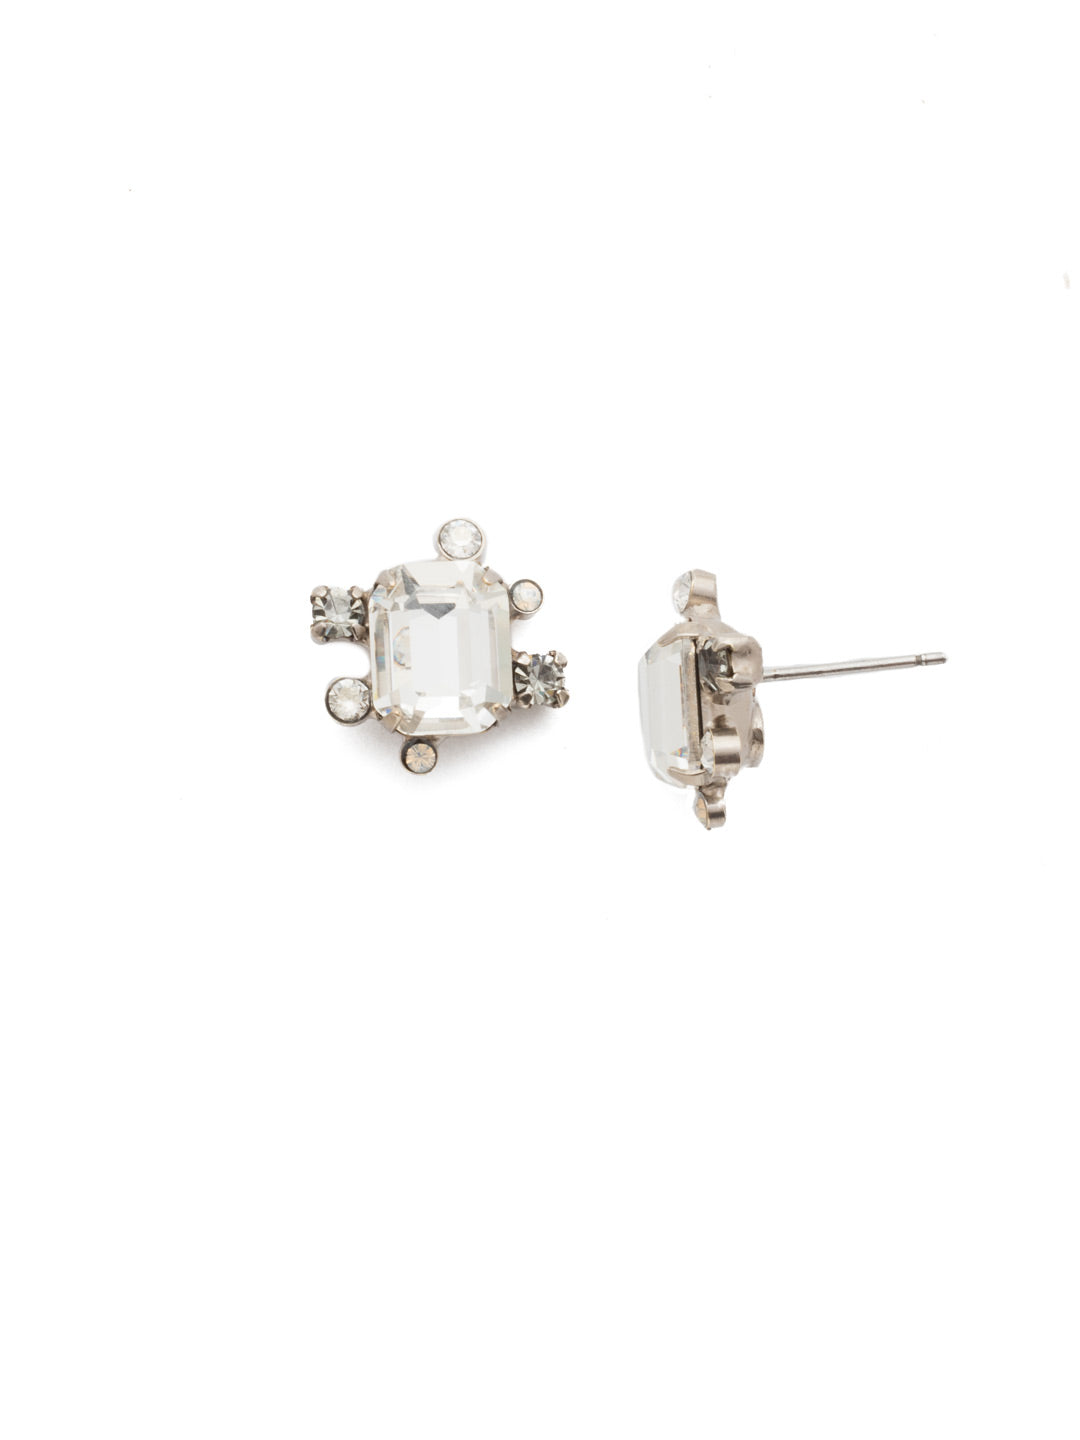 Tara Stud Earrings - EEN30ASSTC